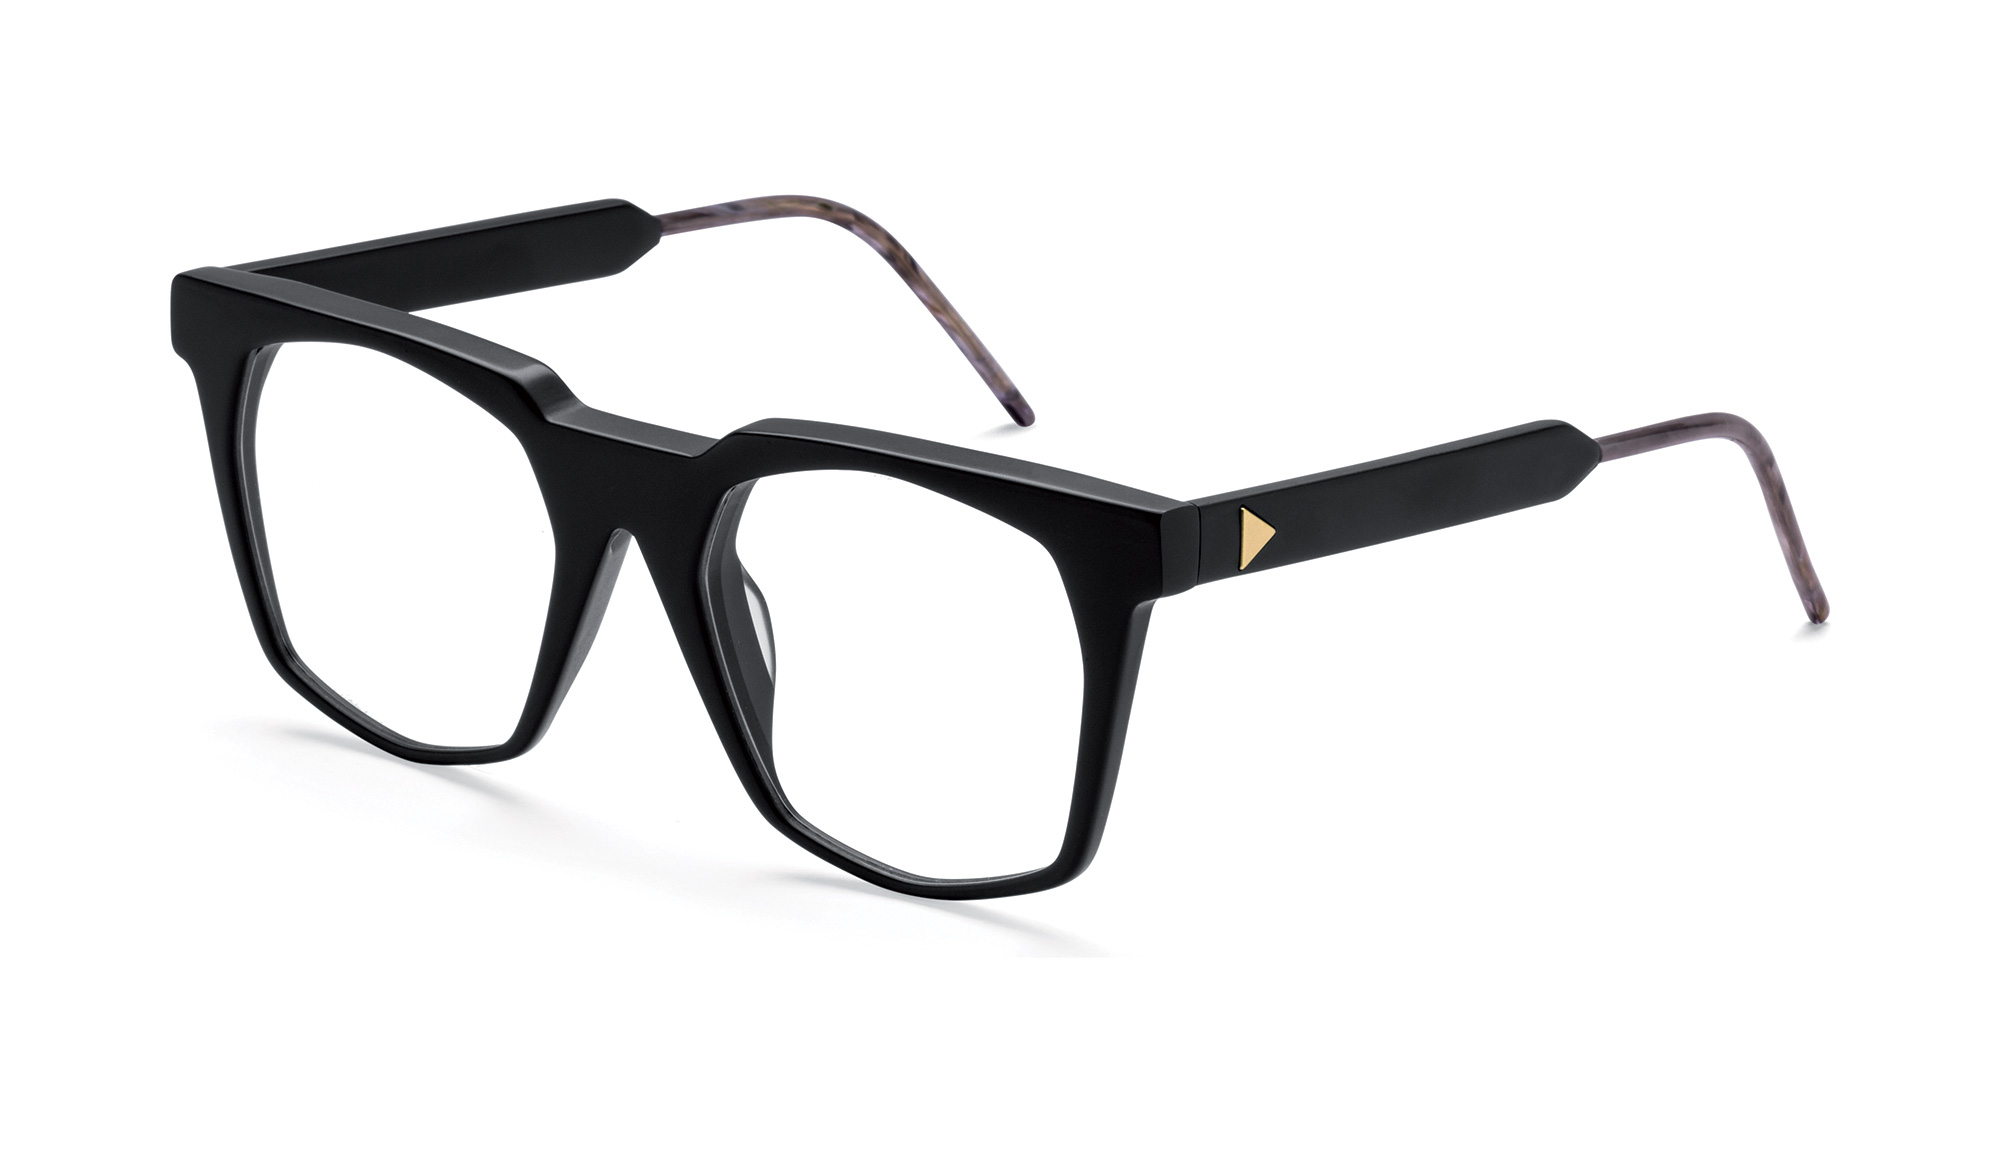 SOYA_adam_optik_matteblack_3_4